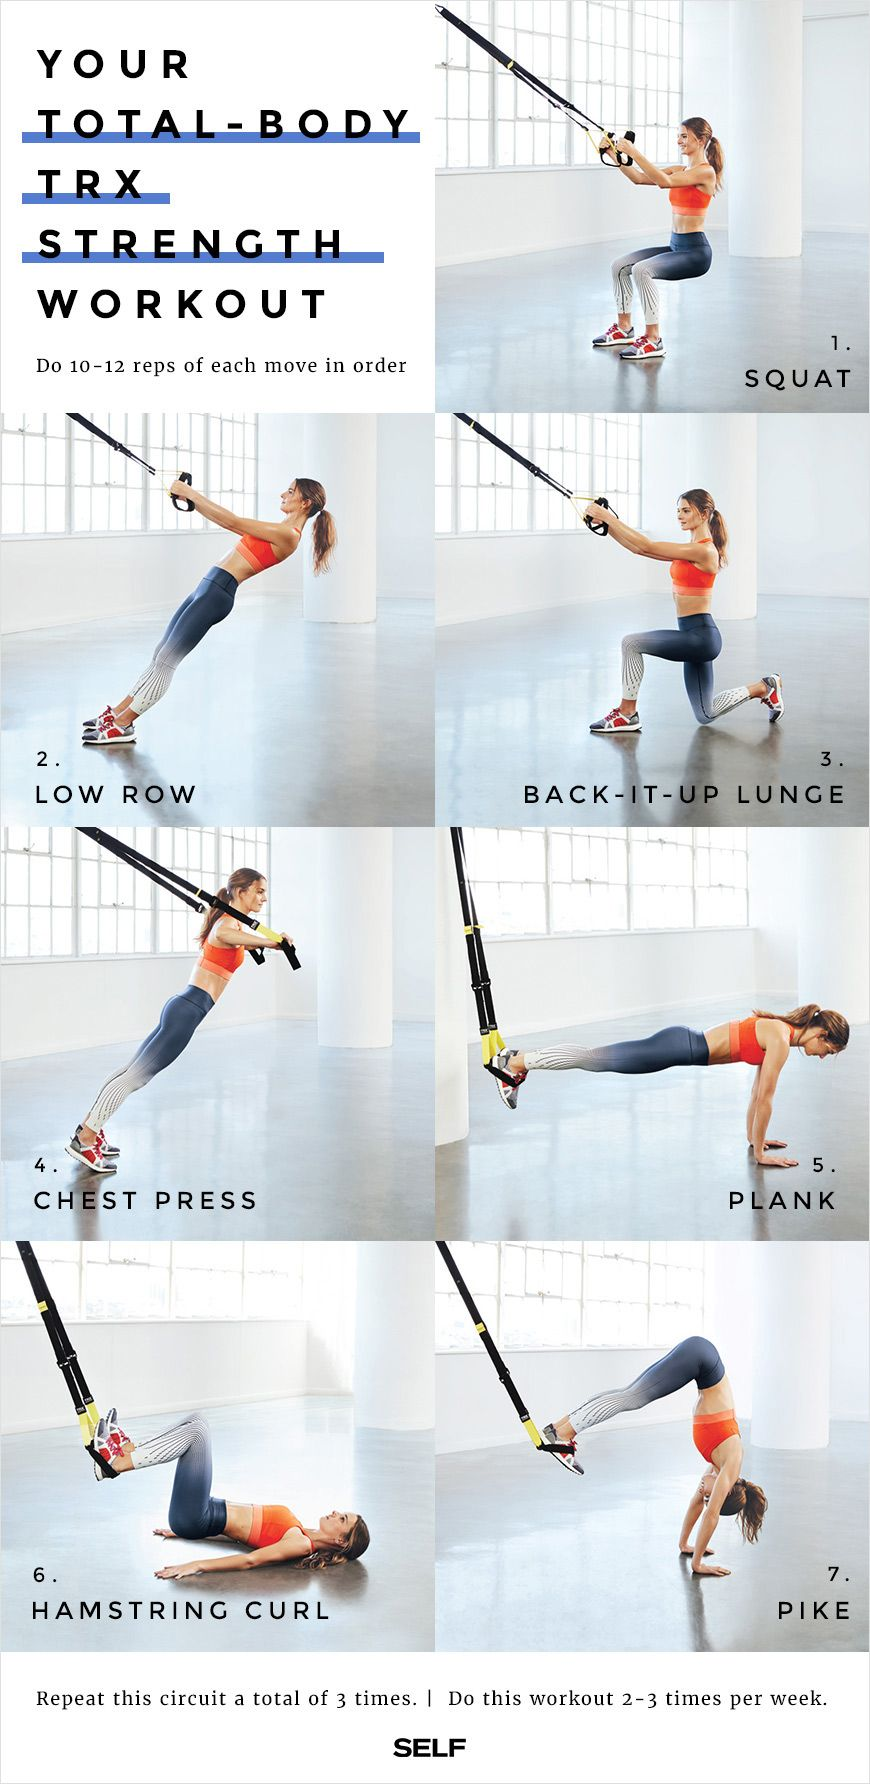 Work Your Entire Body With This Supercharged Trx Workout Get Movin